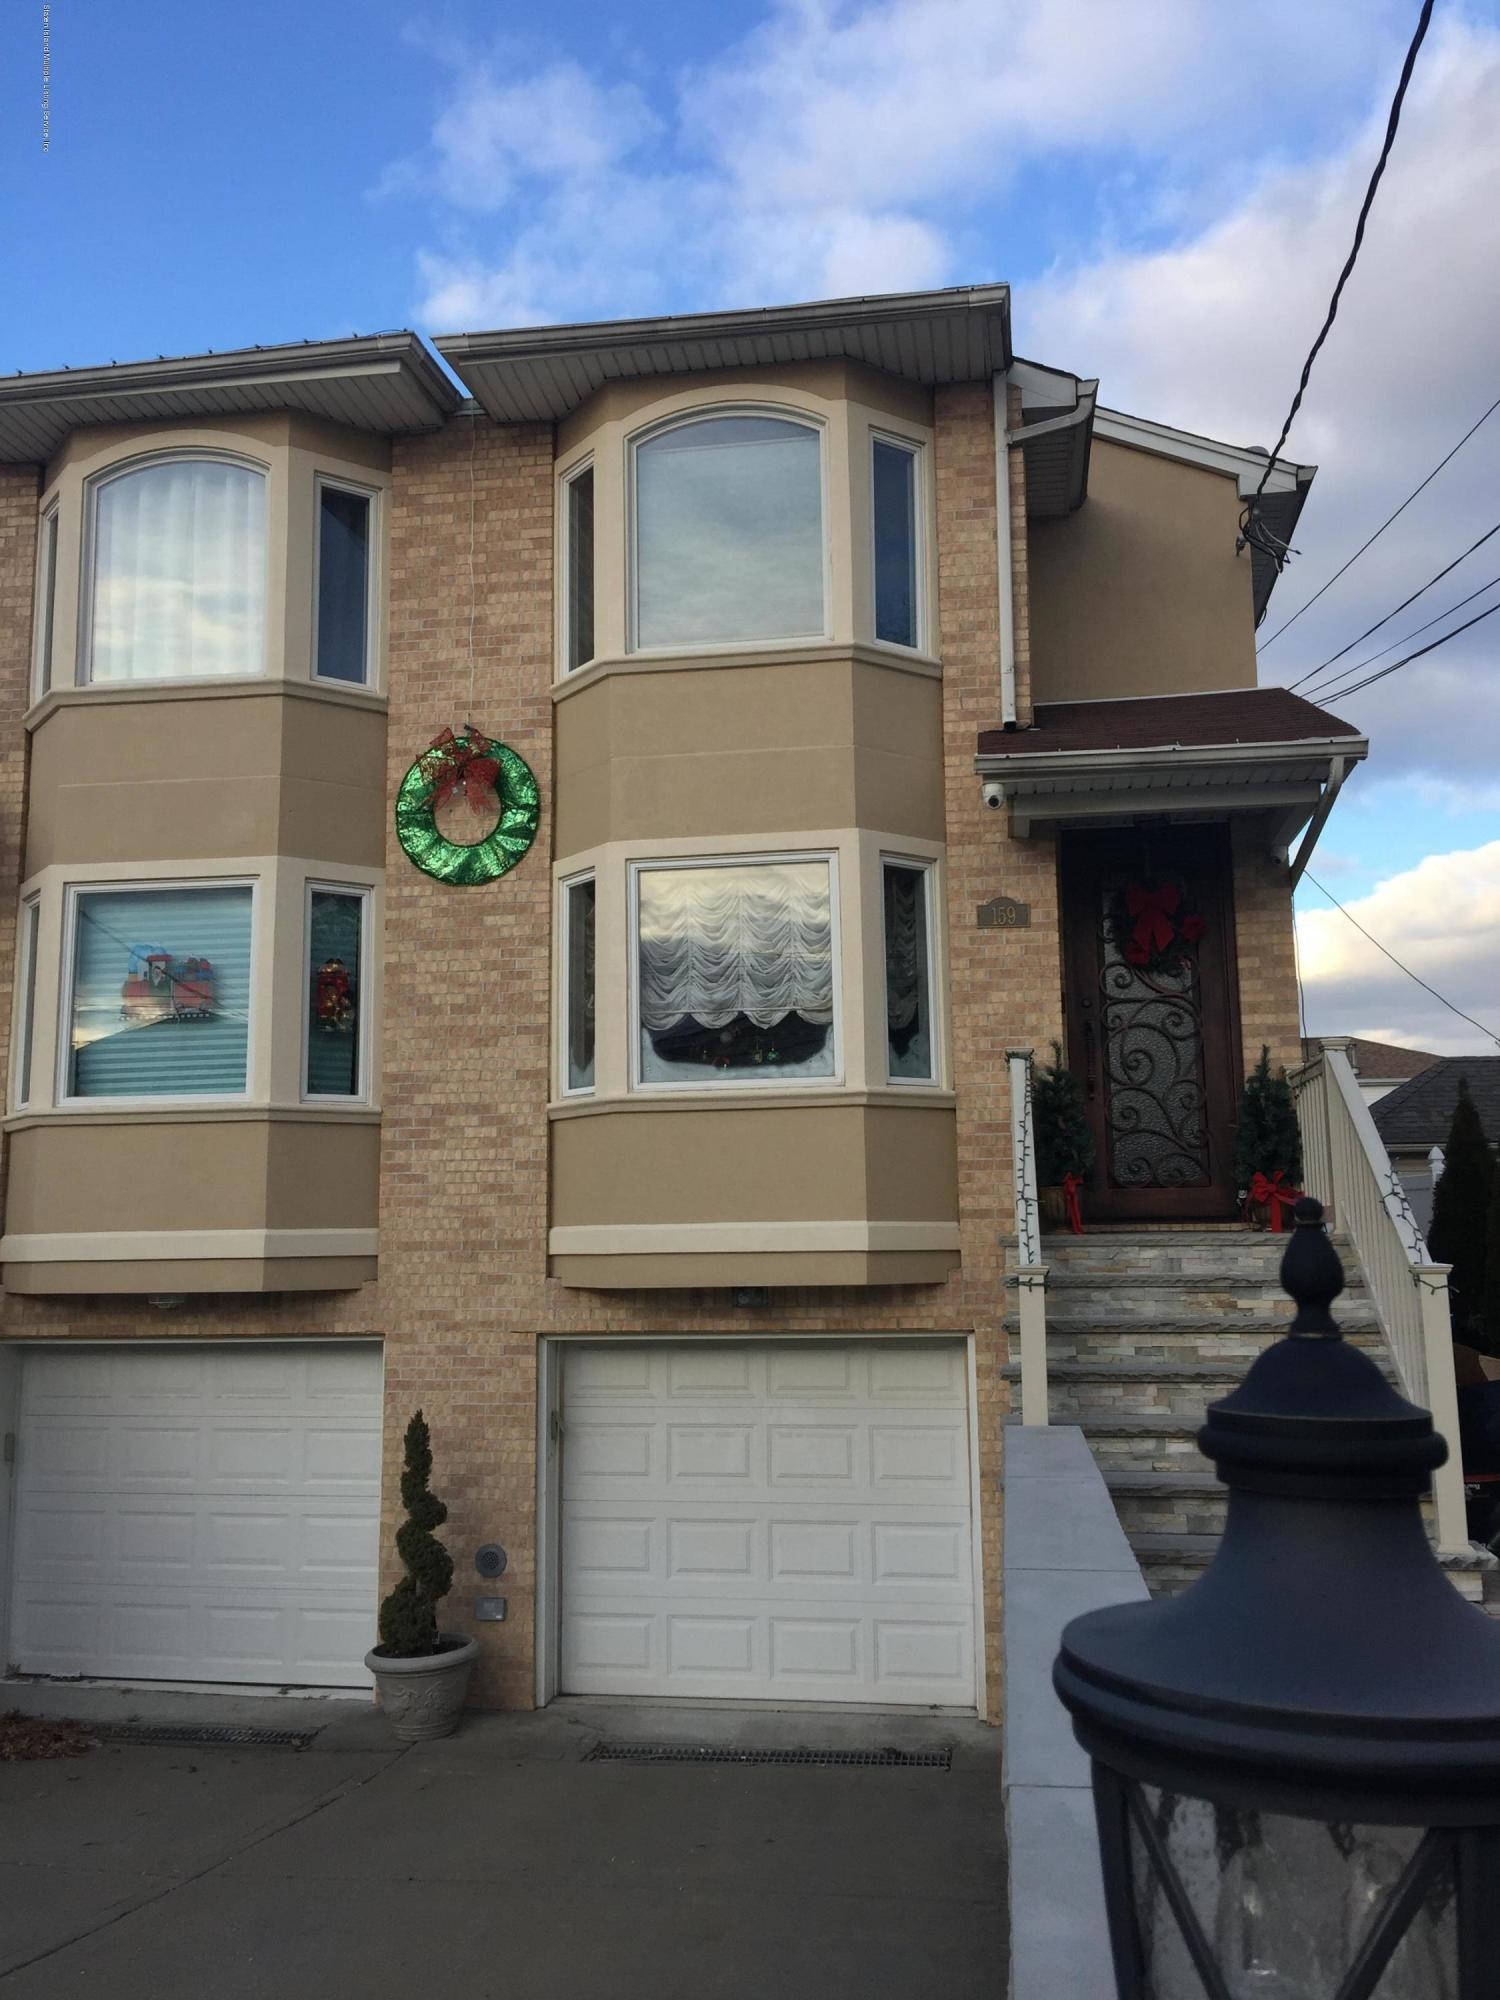 For Rent Residential | New Era Realty NYS